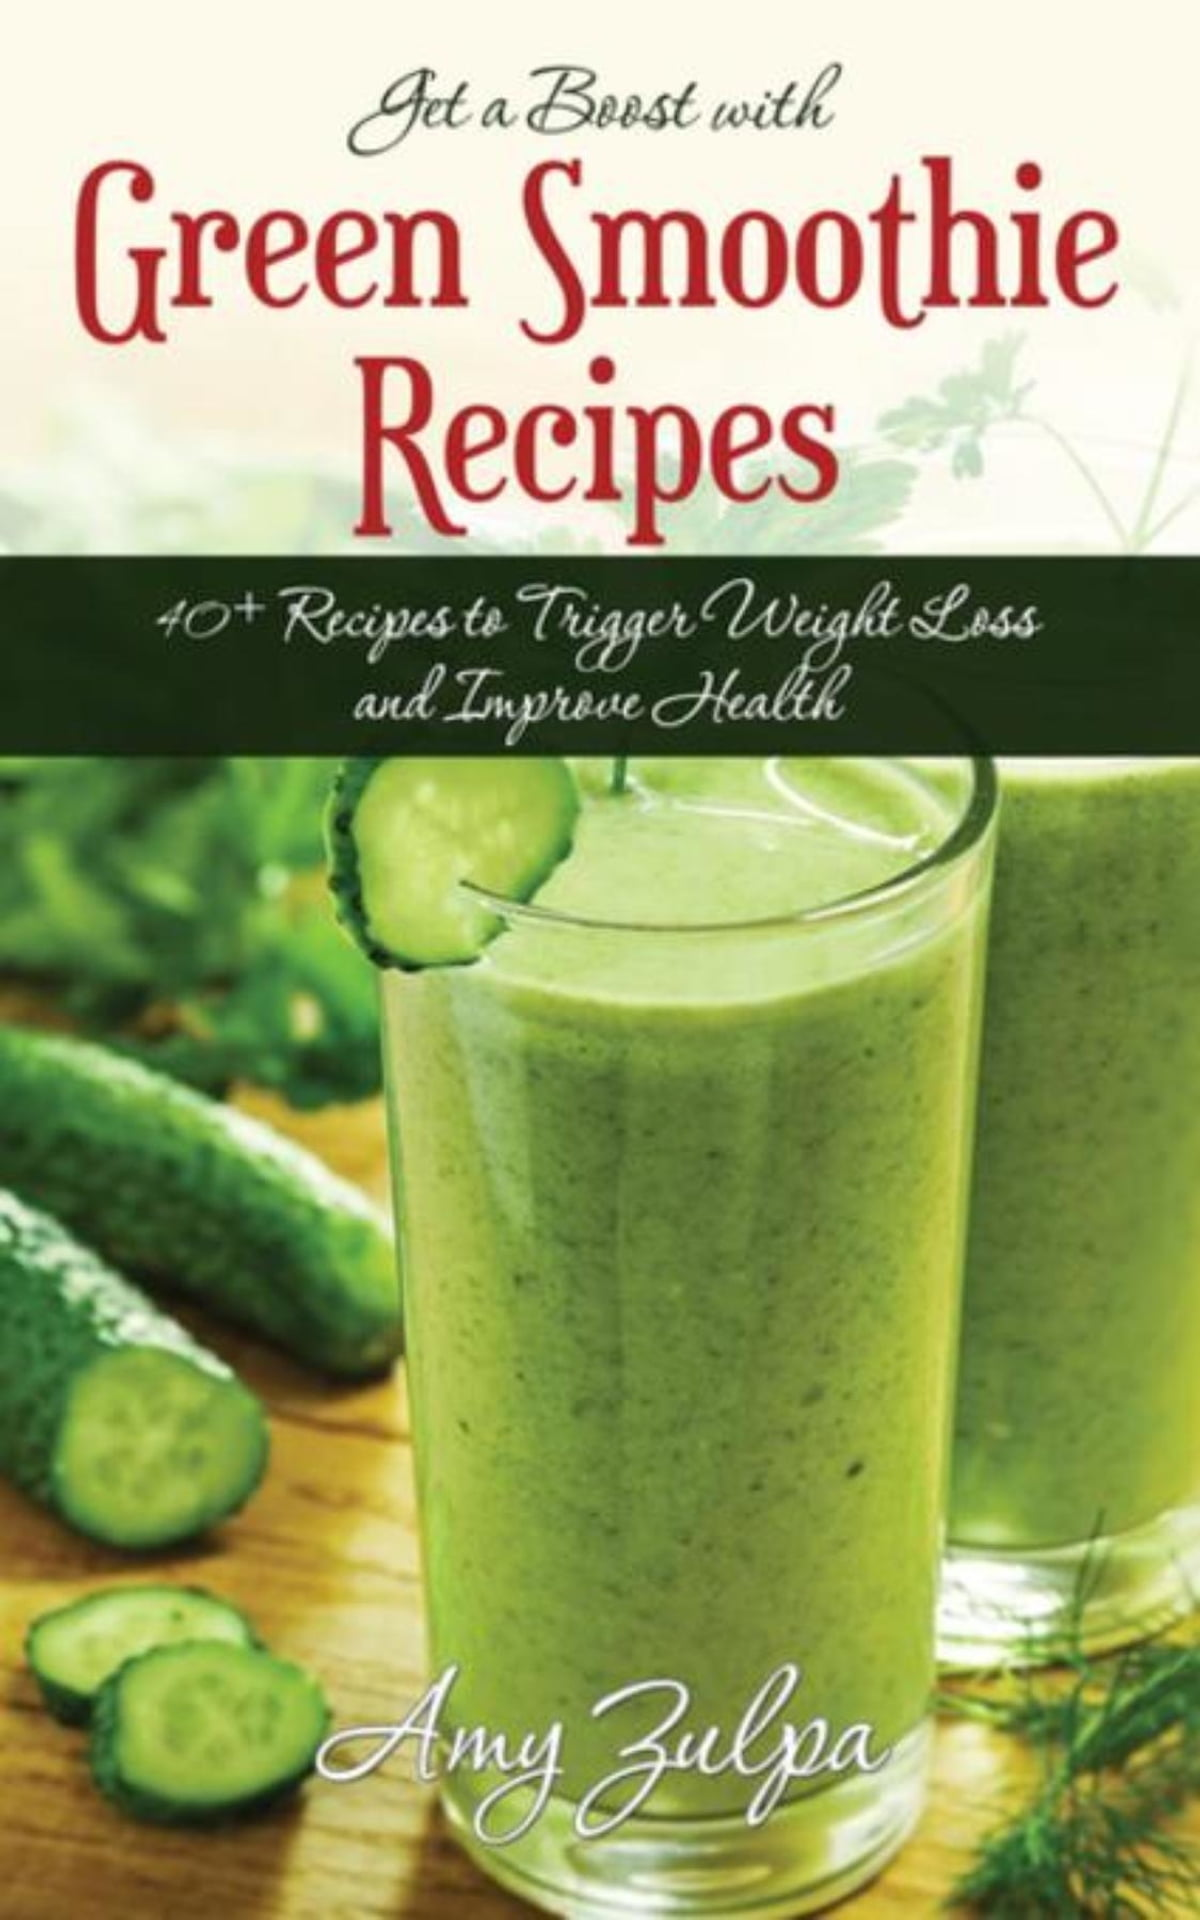 Get A Boost With Green Smoothie Recipes Ebook By Amy Zulpa Rakuten Kobo